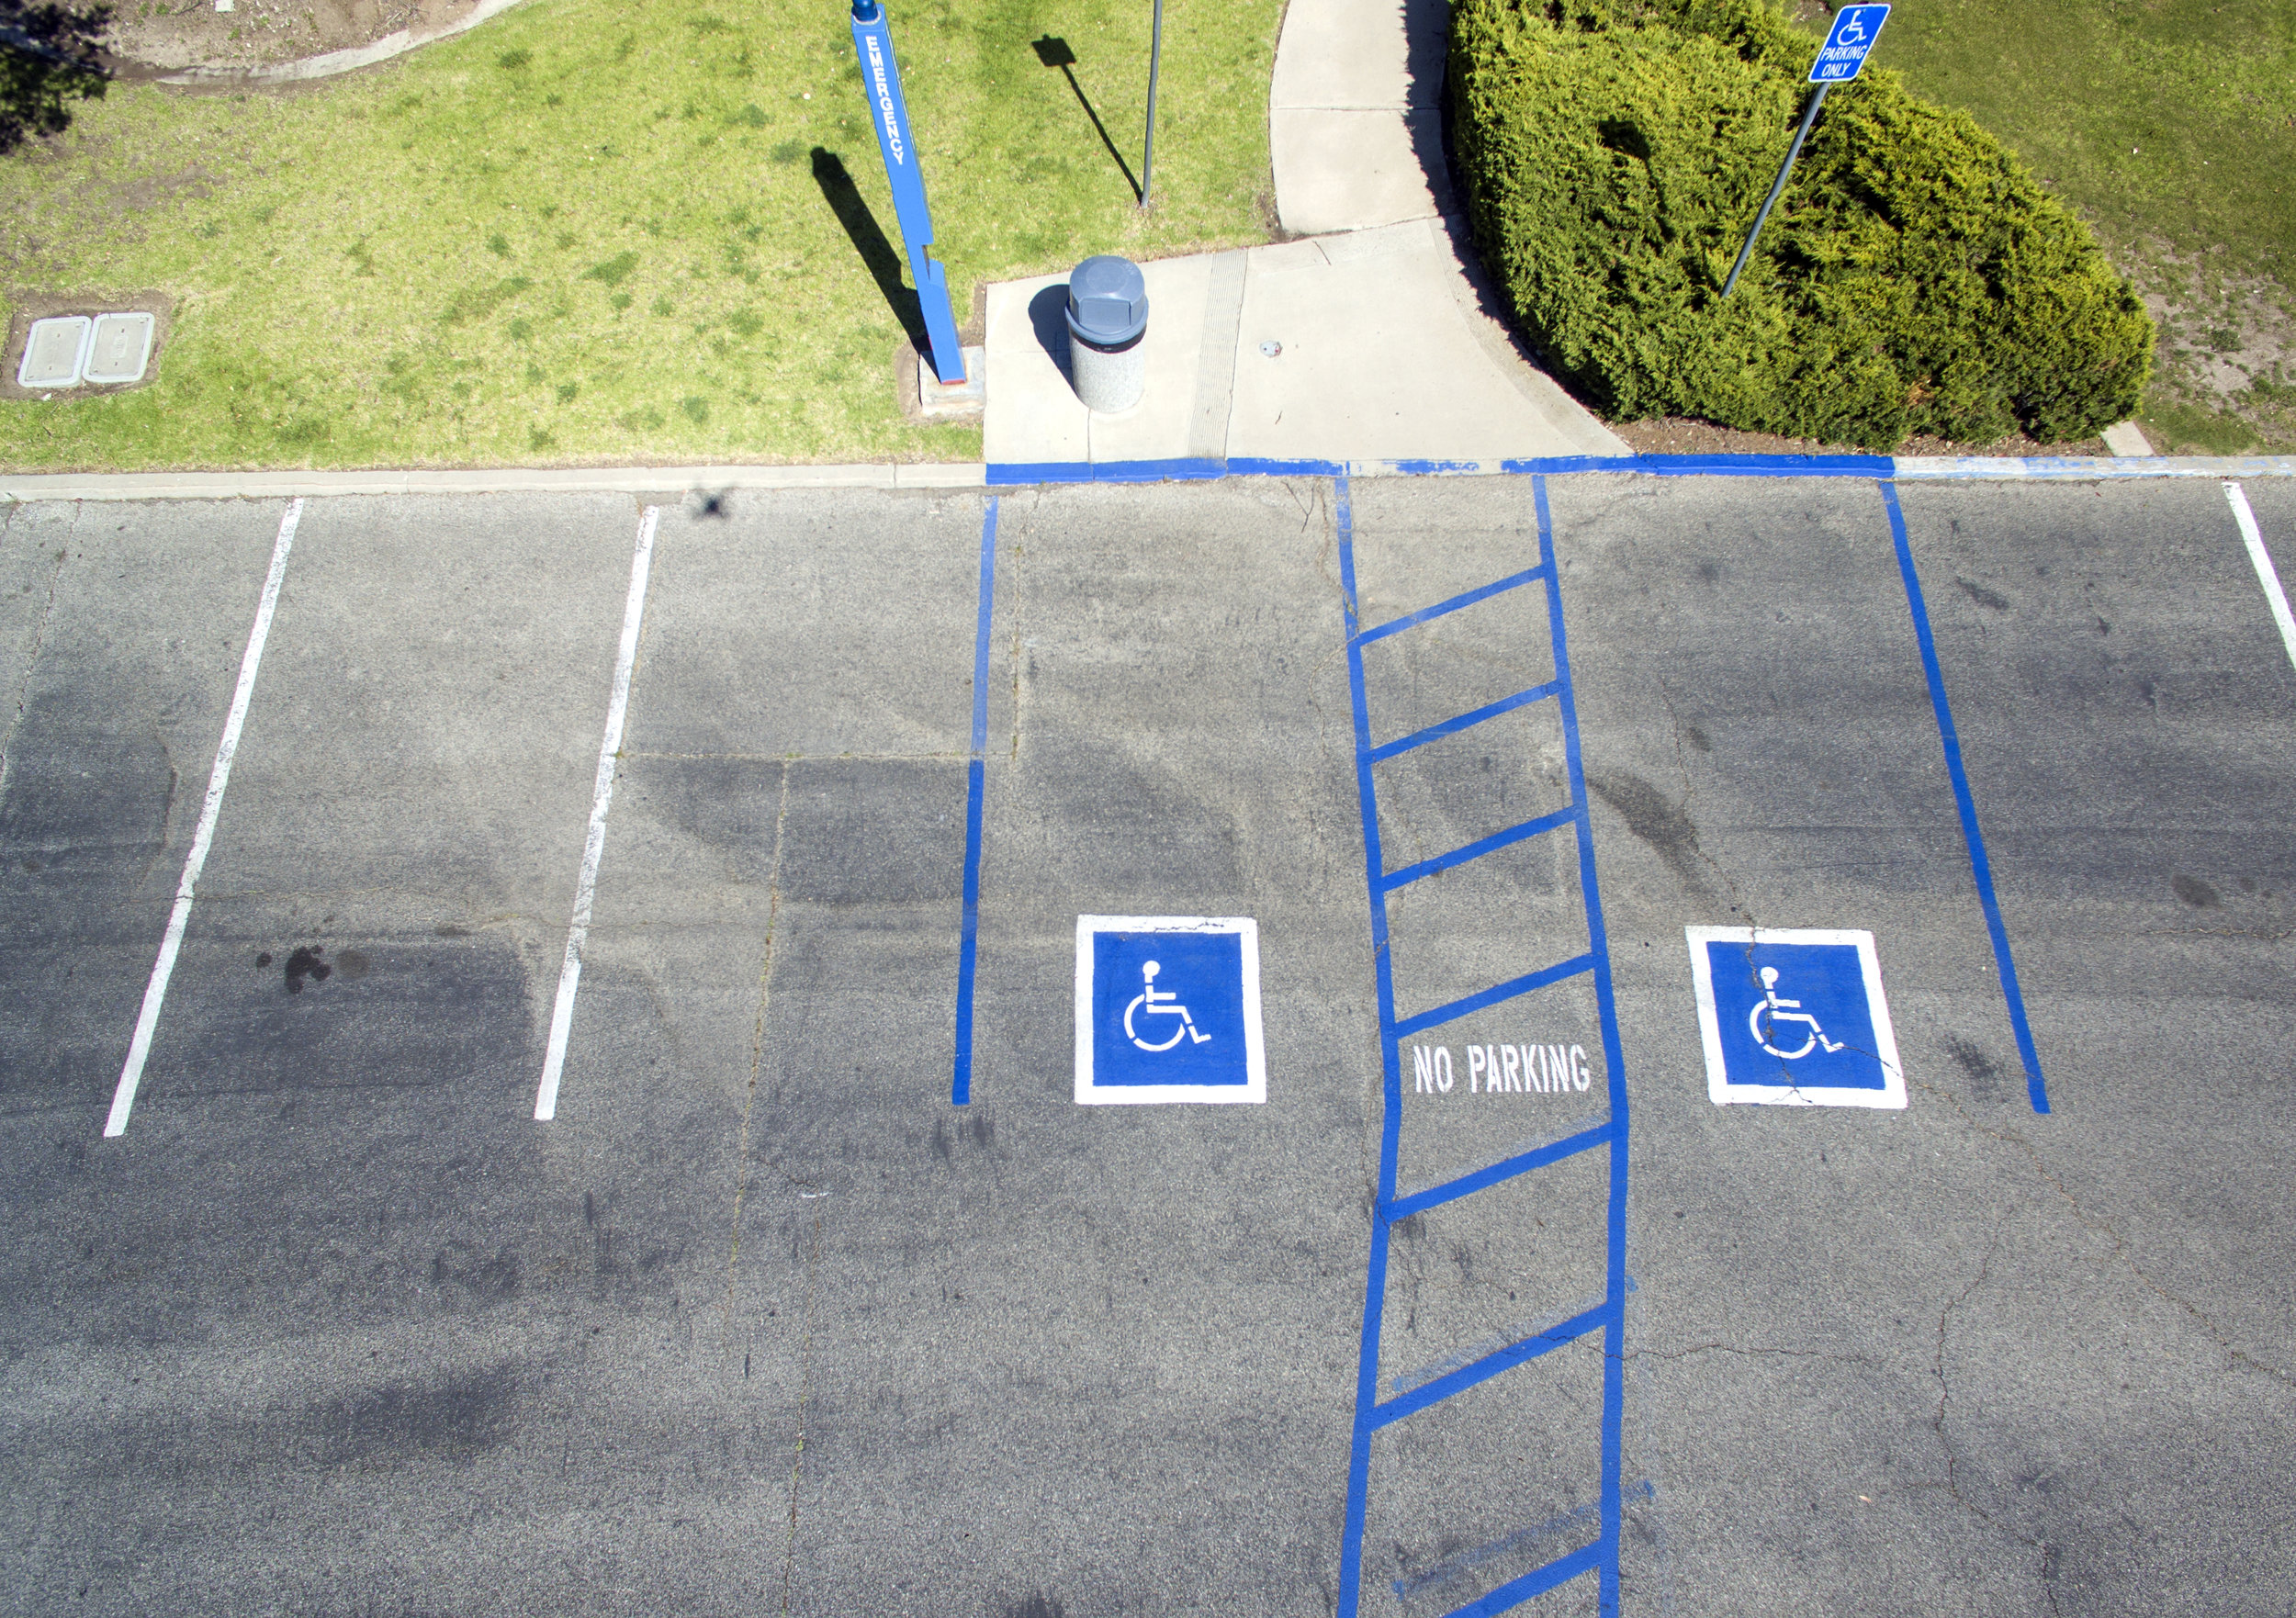 Handicap Parking Guide According to Dave